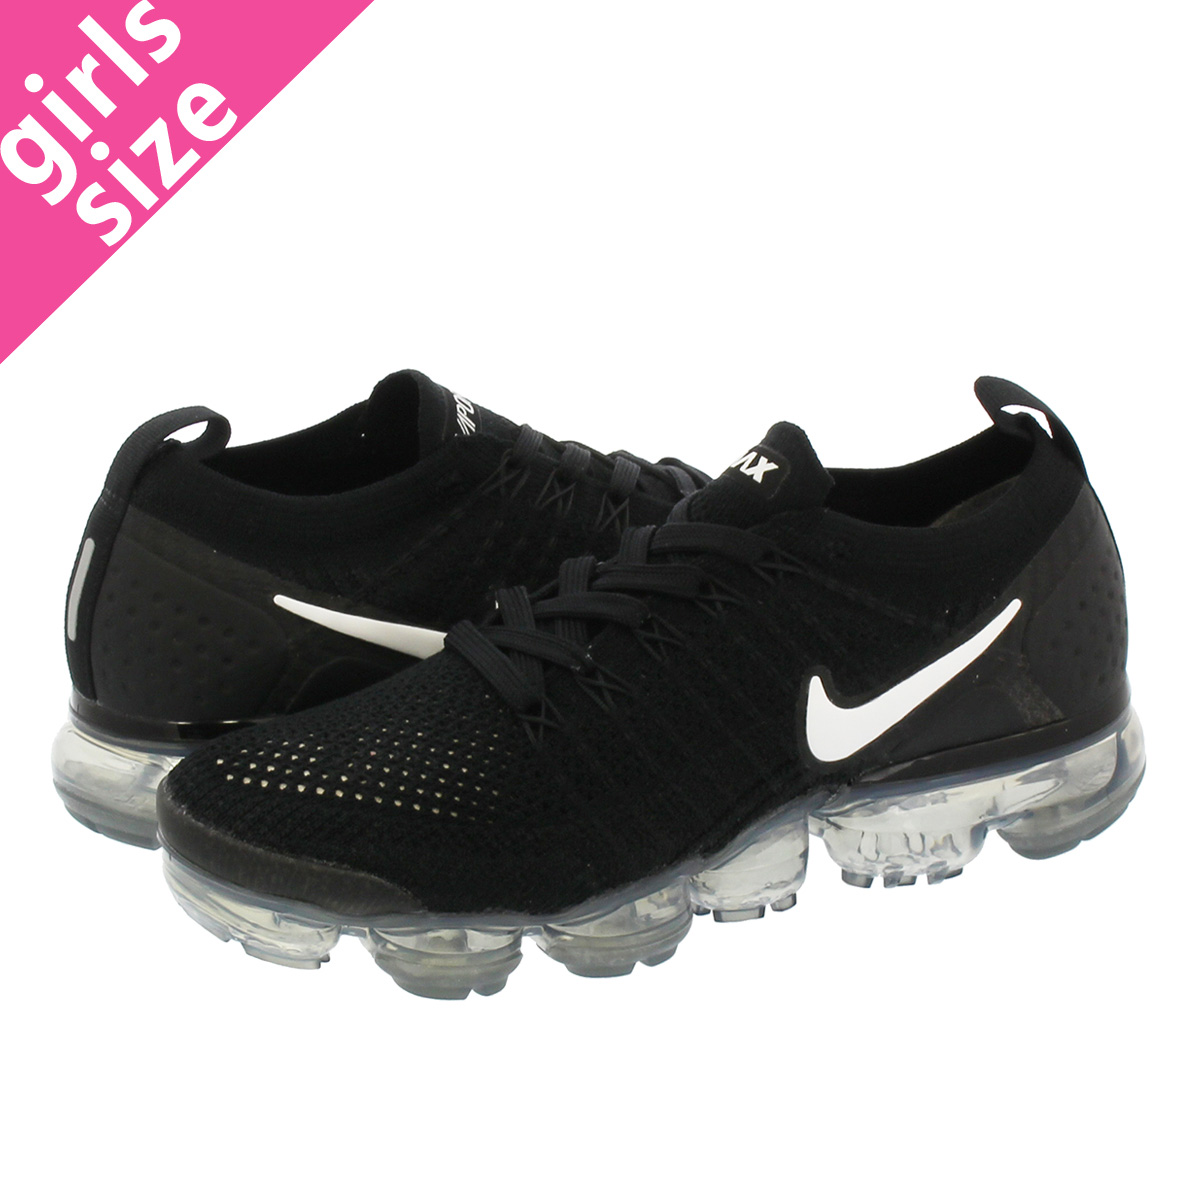 79c3bb3405a NIKE WMNS AIR VAPORMAX FLYKNIT 2 Nike women vapor max fried food knit  BLACK WHITE DARK GREY METALLIC SILVER 942